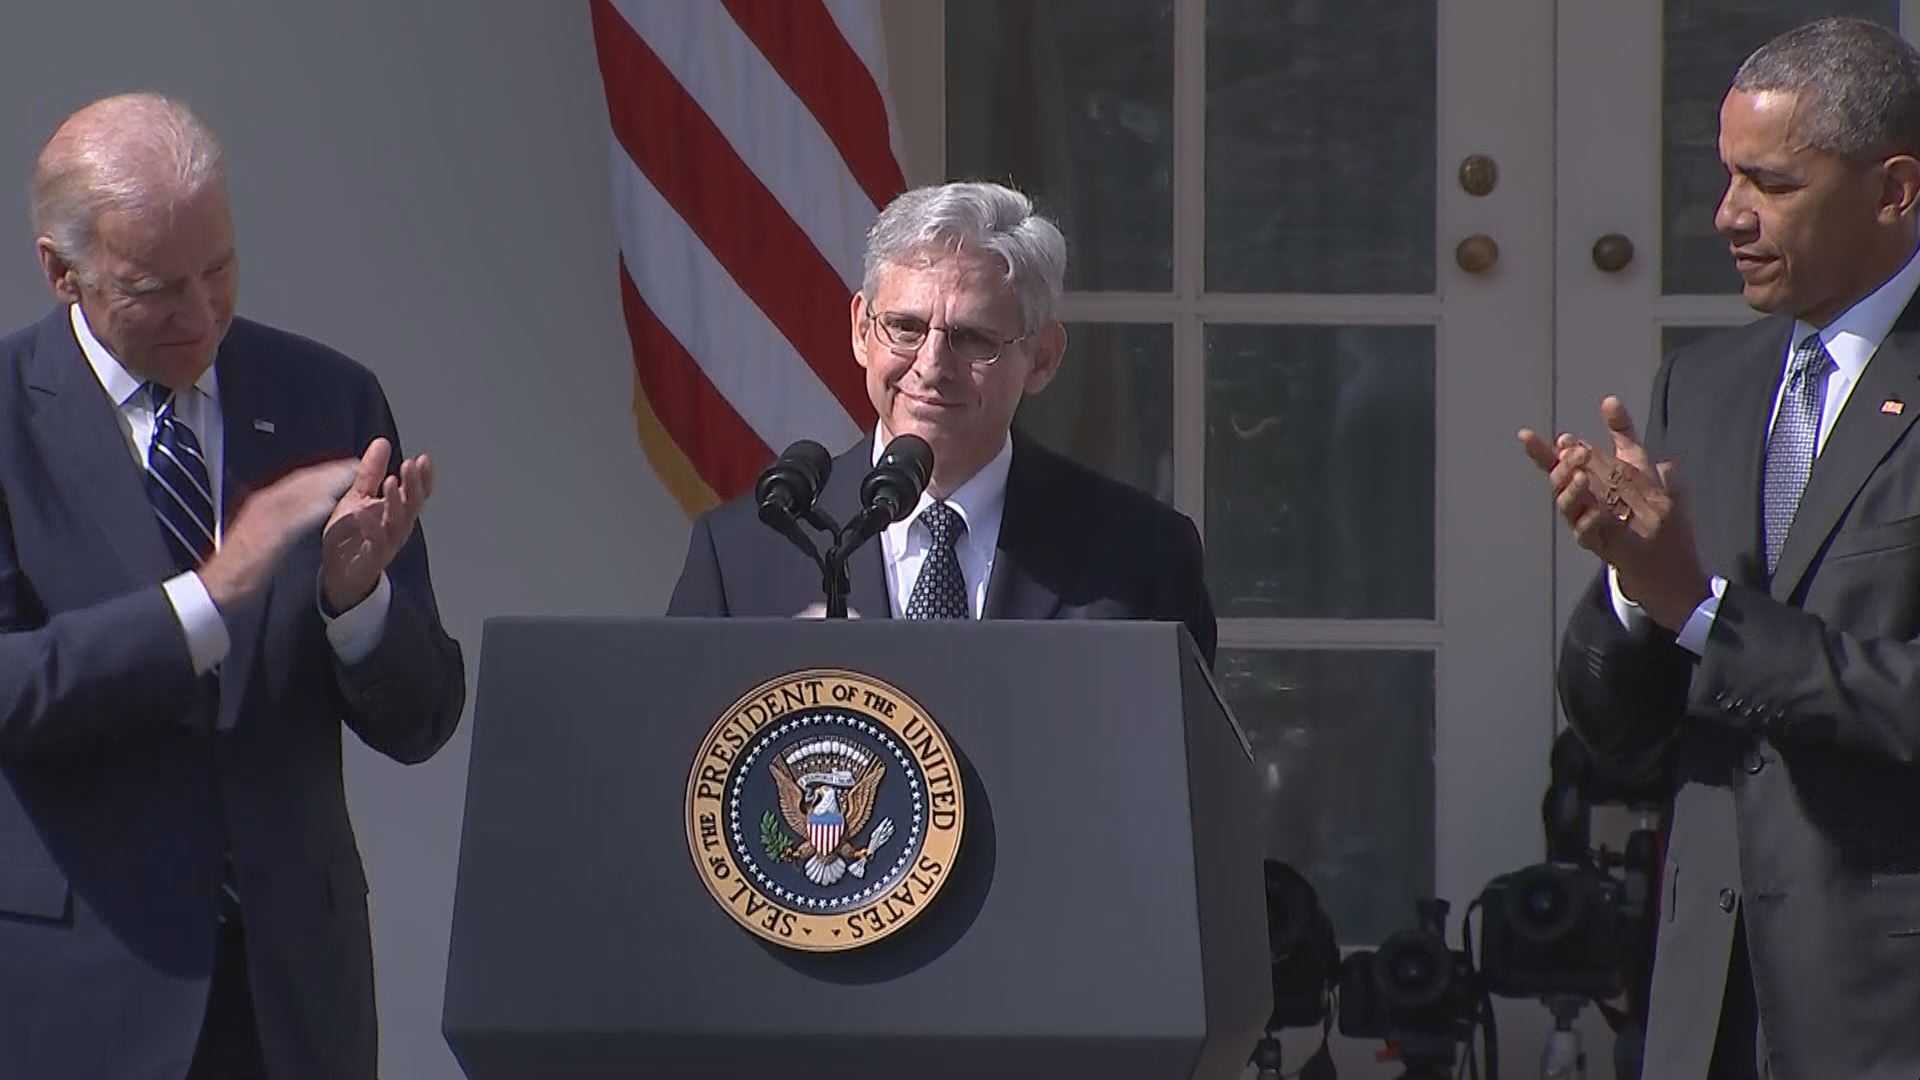 Merrick Garland Supreme Court Nomination